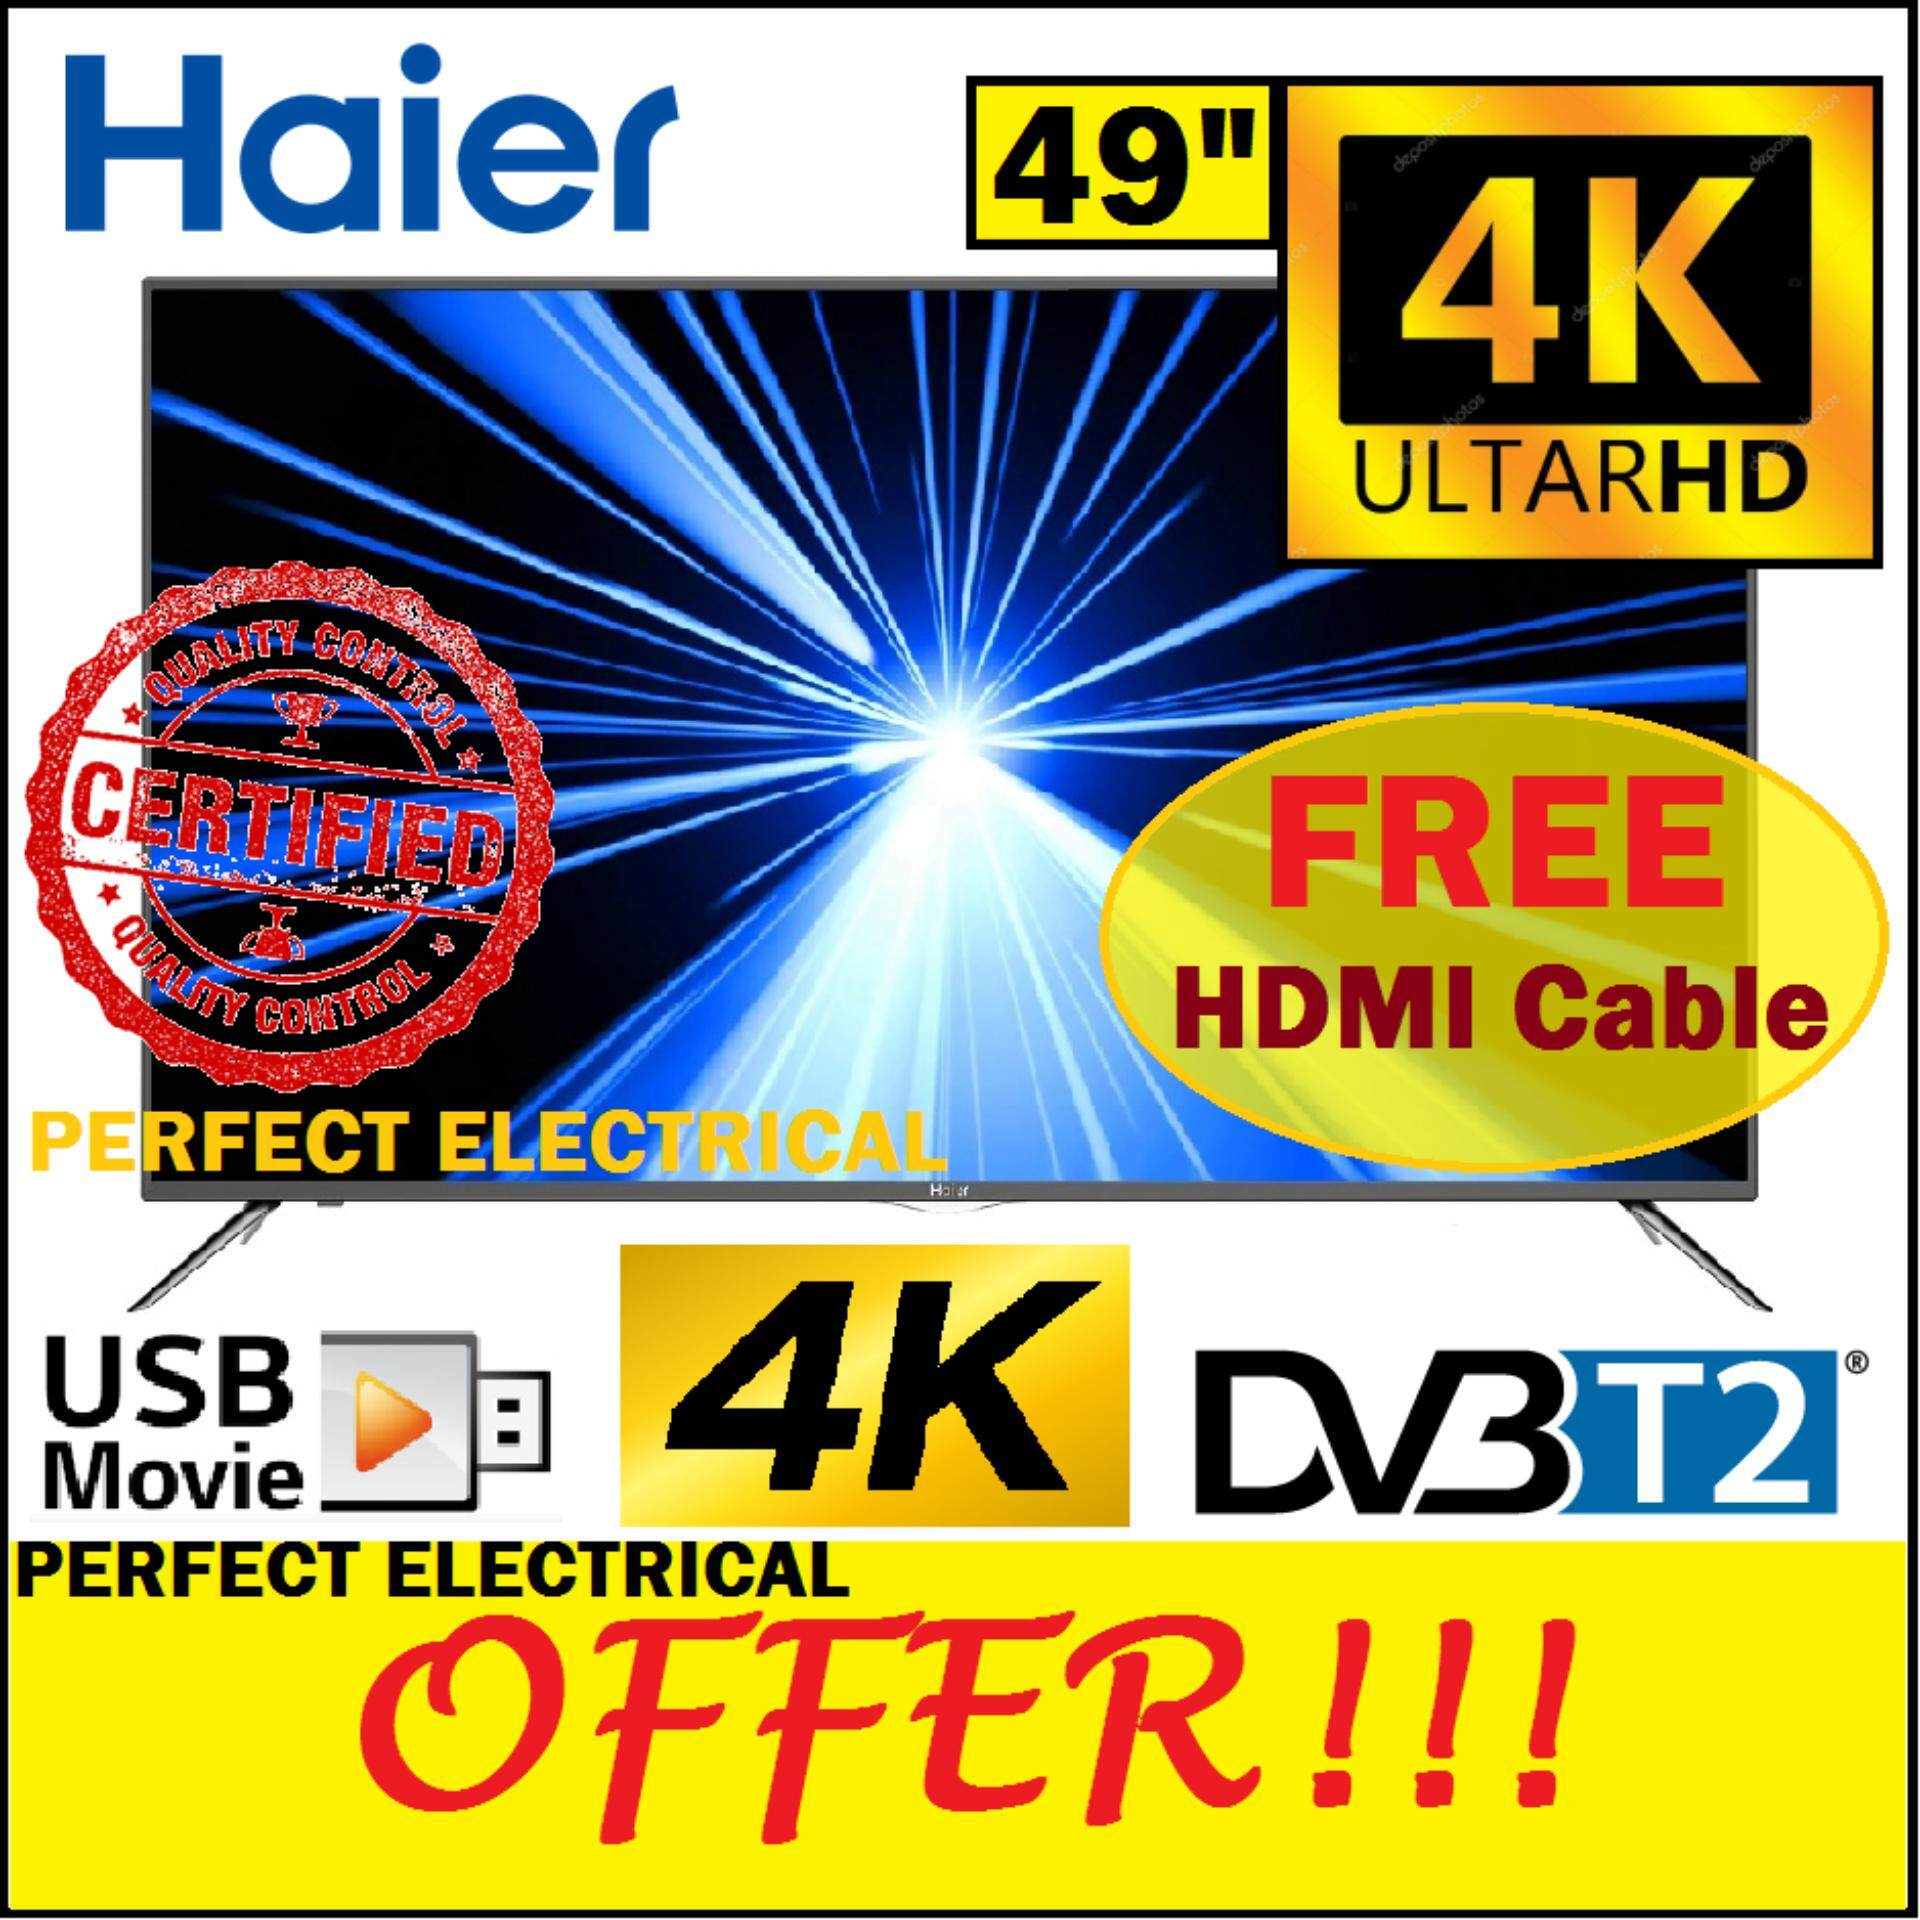 Buy Haier Led Lcd Tvs At Best Price In Malaysia Lazada Project Ultra Fast Acting Electronic Circuit Breaker 49 Inch Tv 4k Uhd Dvb T2 Le49f1000u